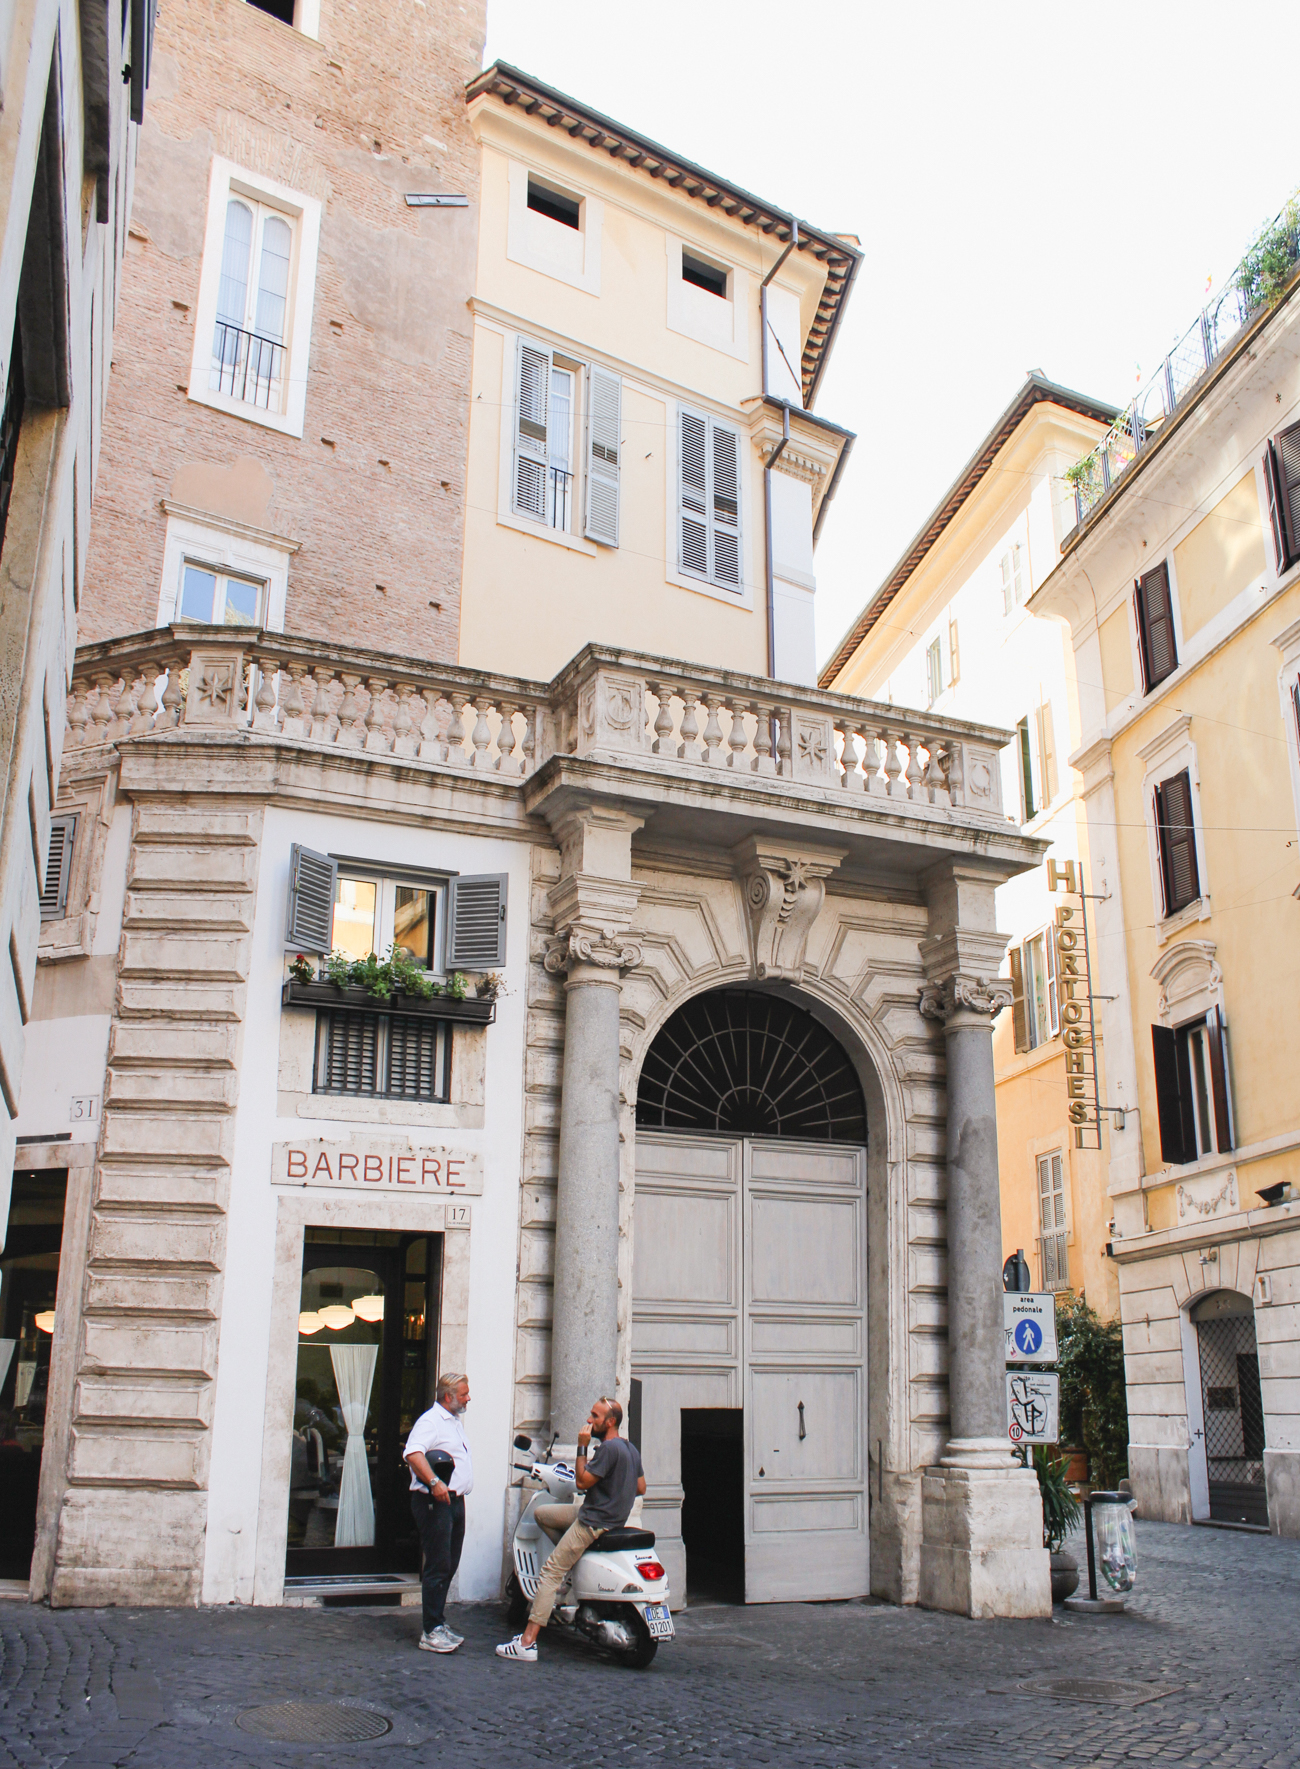 25 things you must do in Rome, Italy | Eat Pray Love